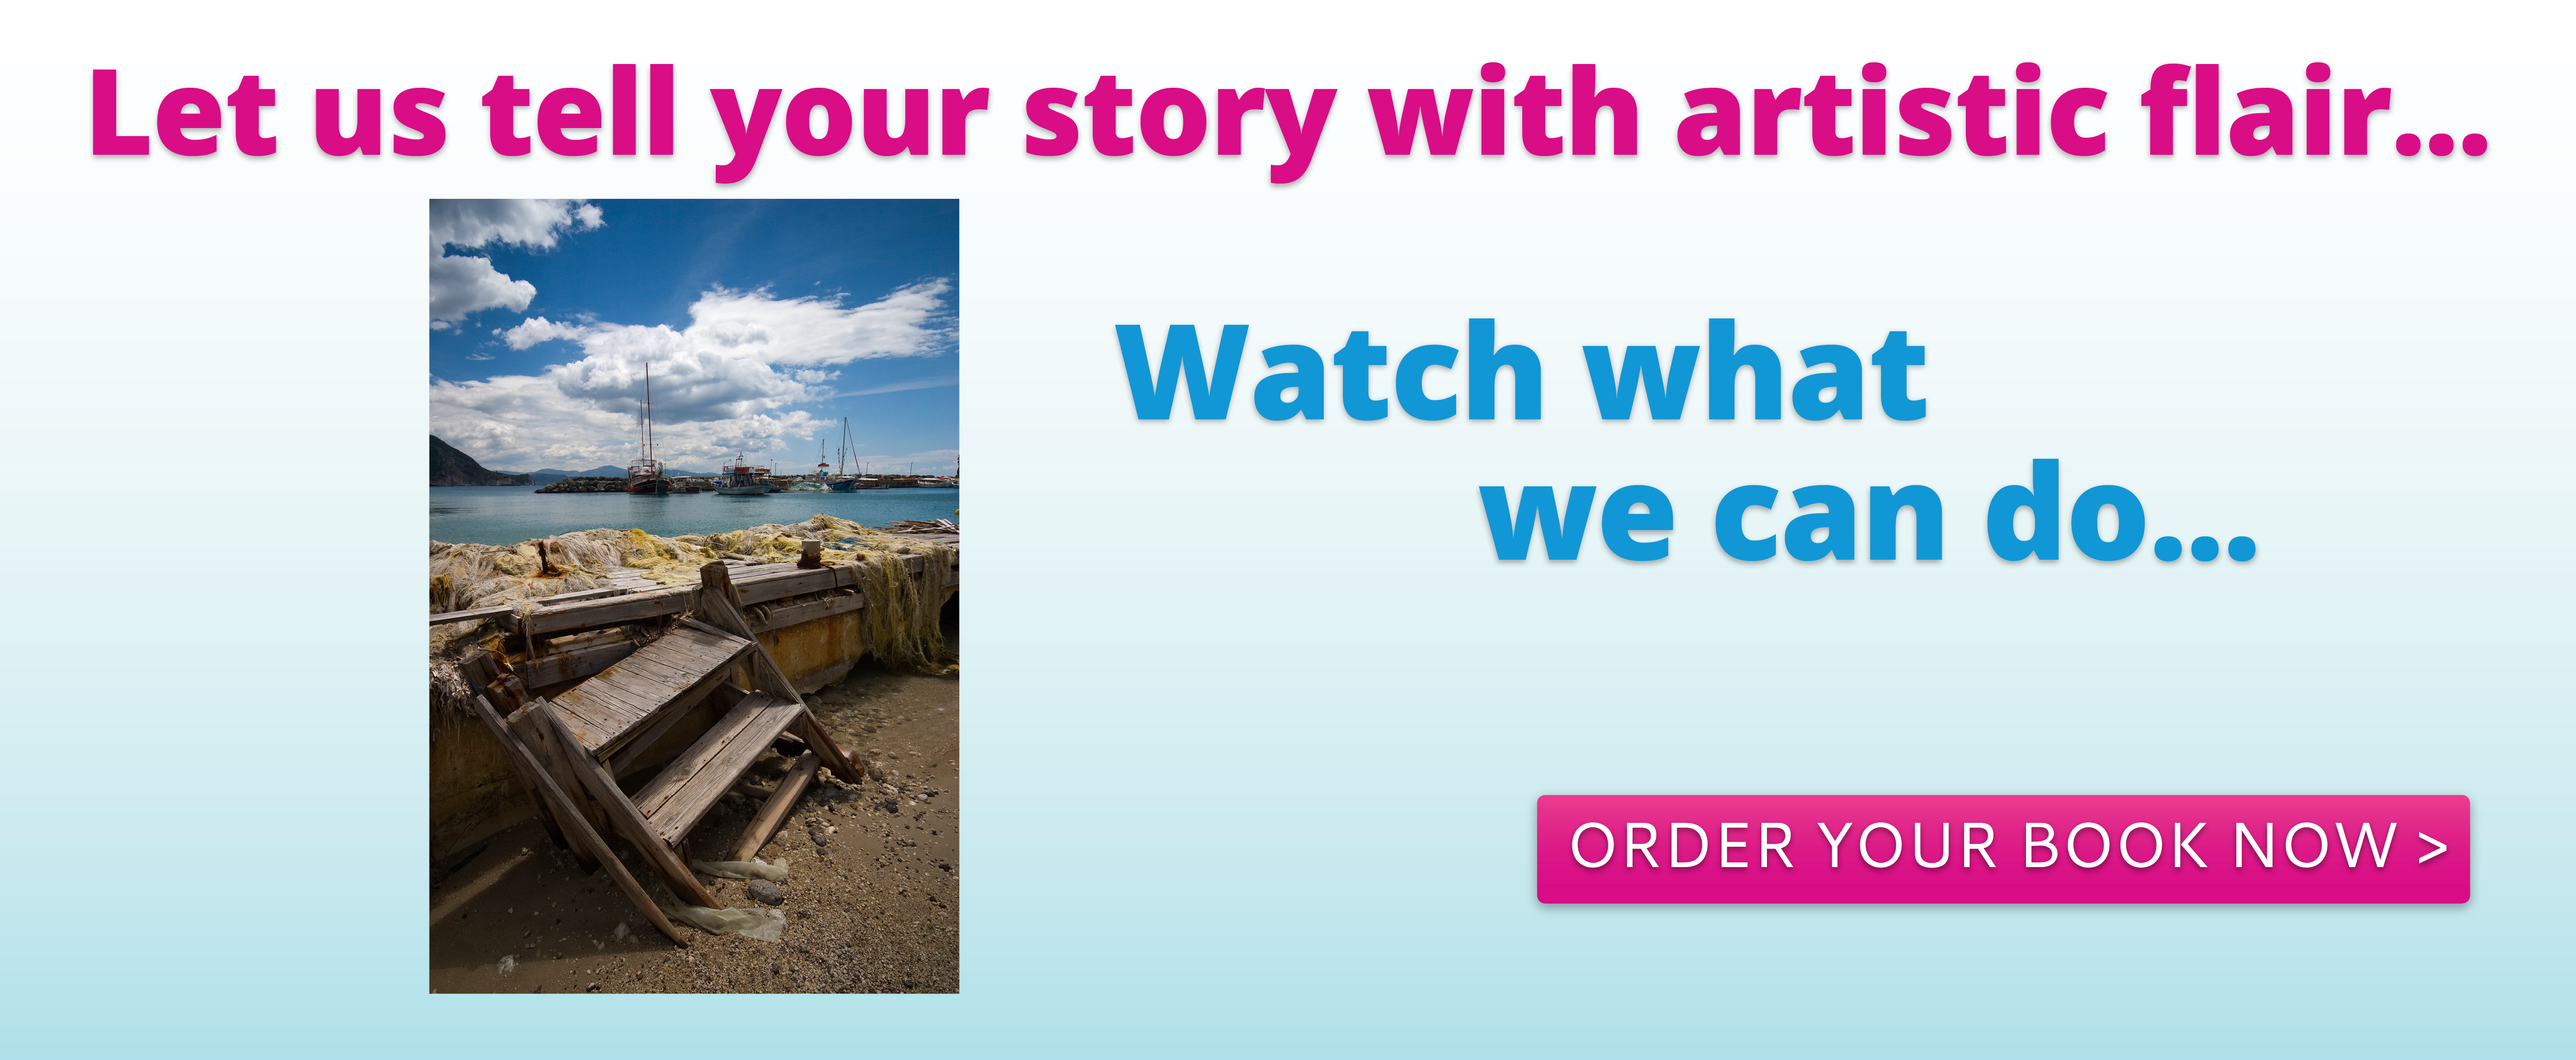 Let us tell your story with artistic flair...